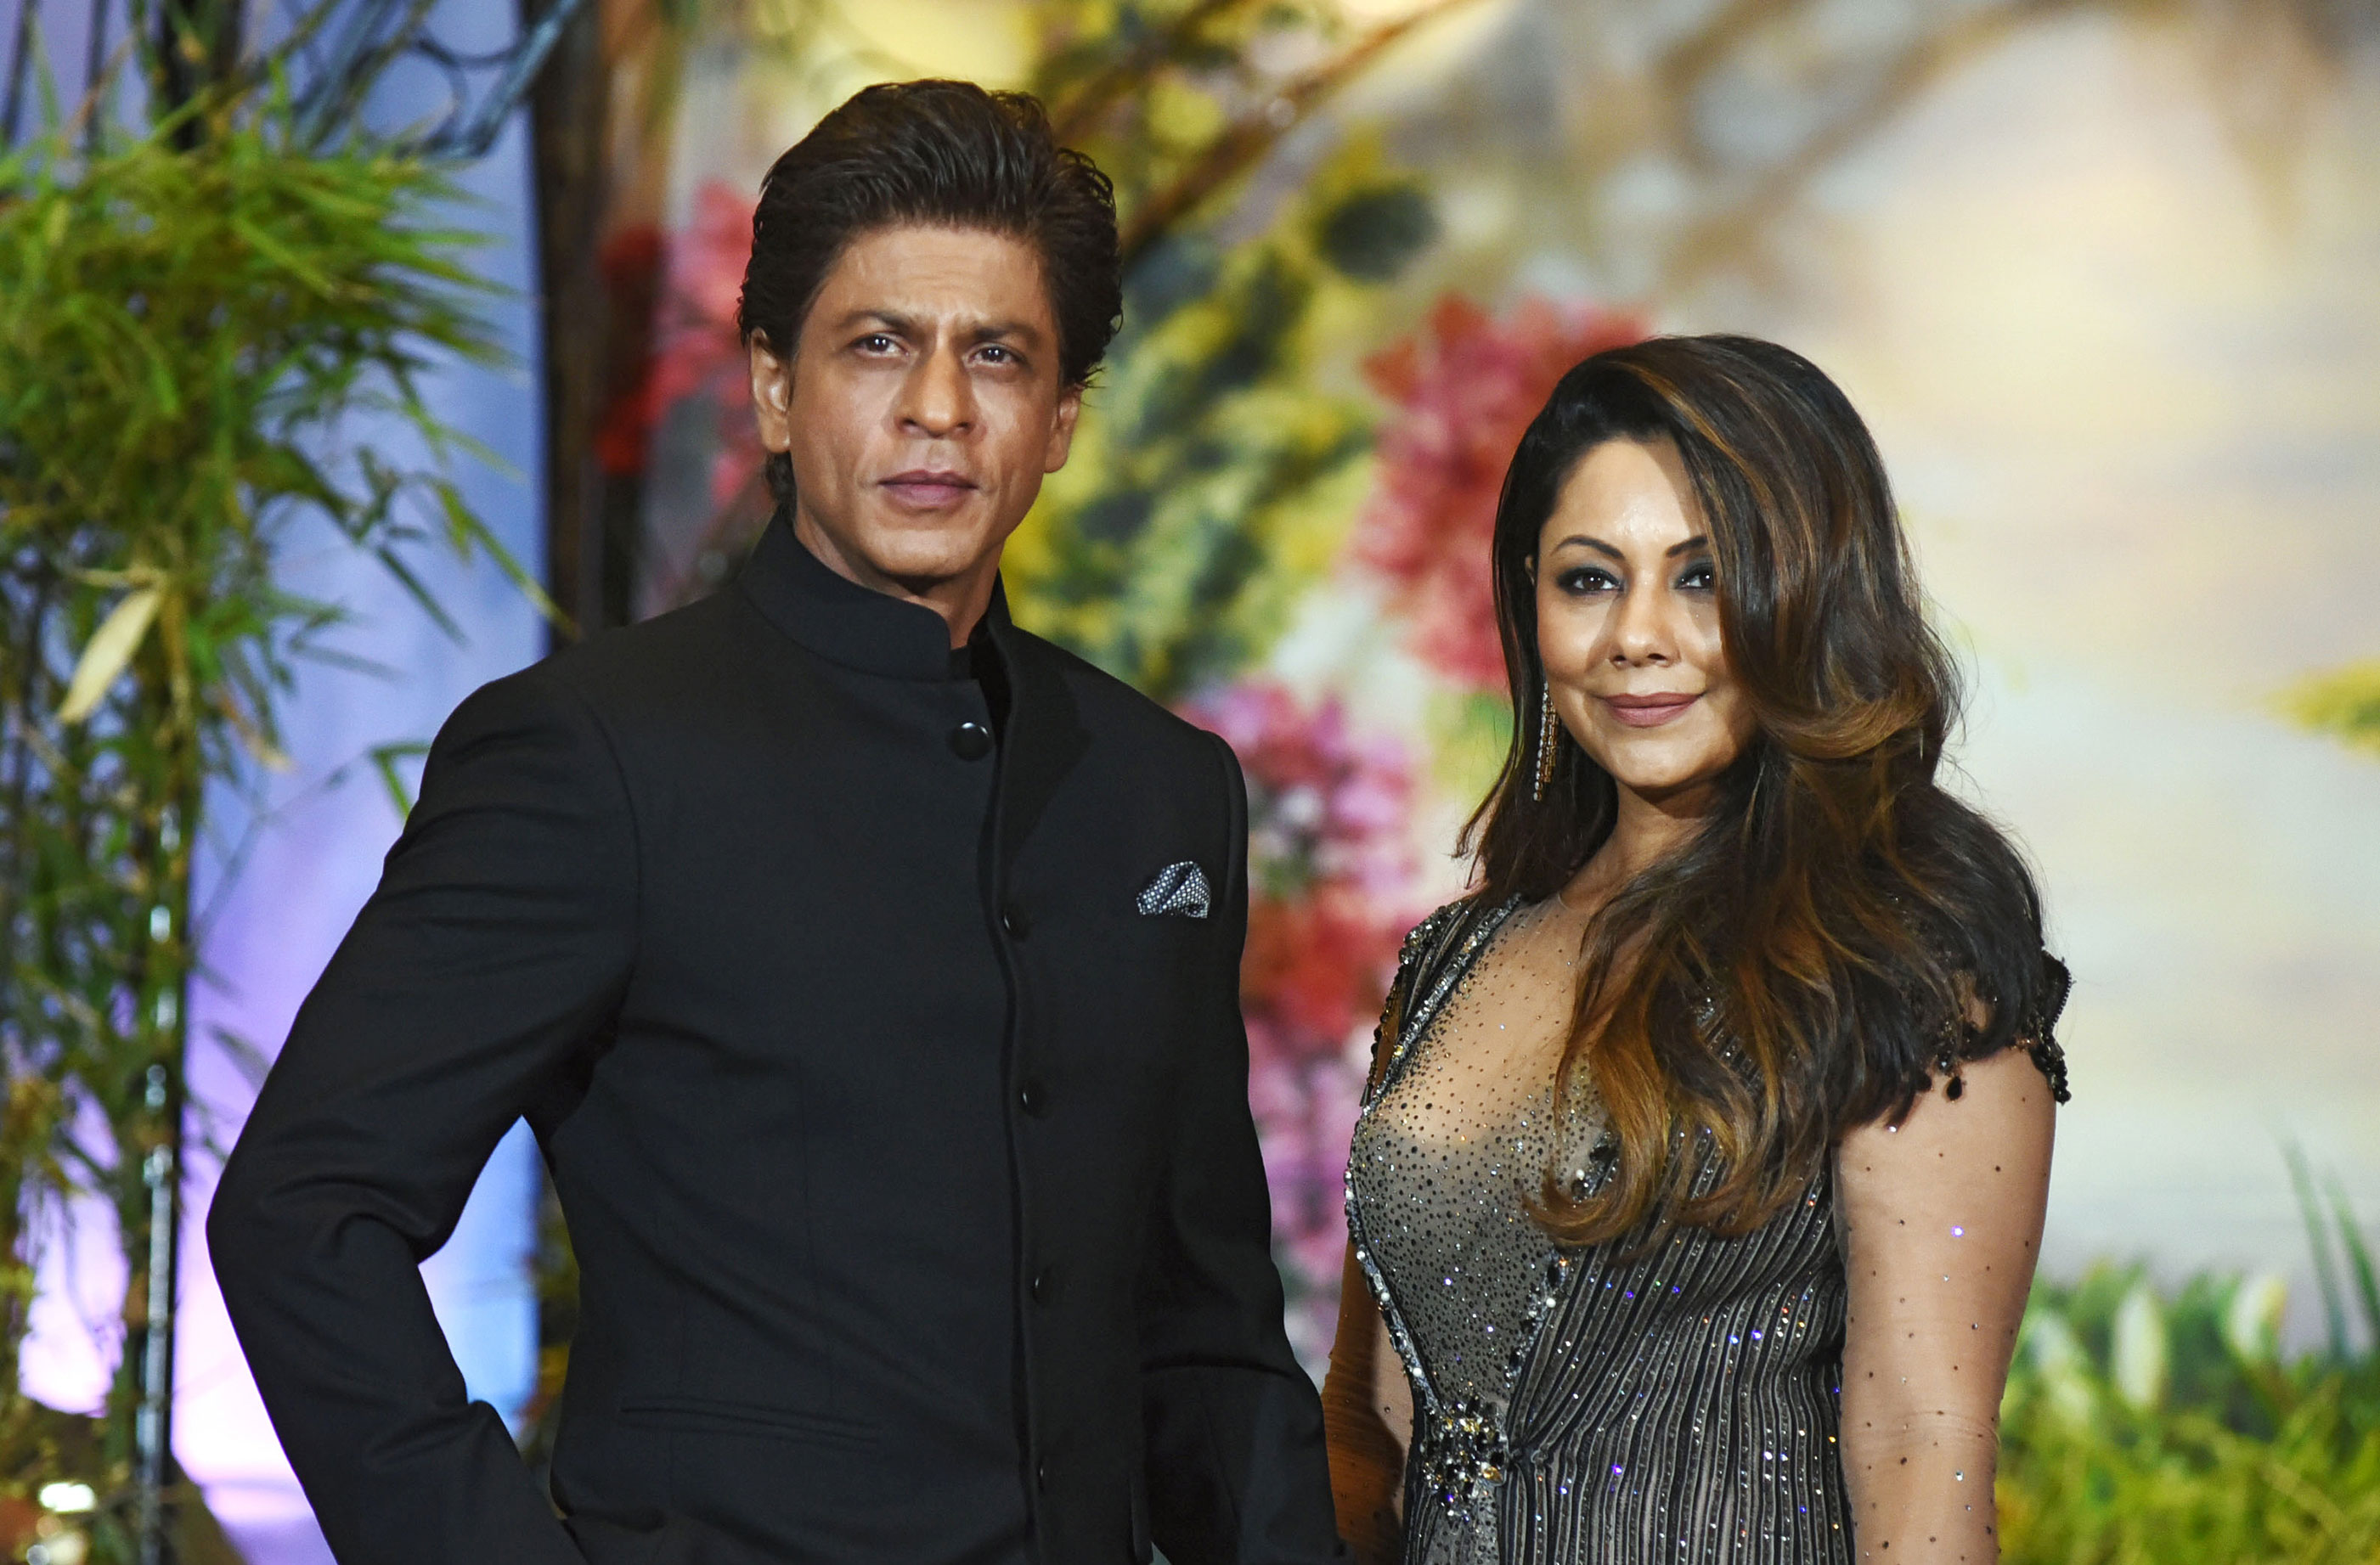 Actor Shah Rukh Khan and his with wife Gauri Khan attend a wedding reception in Mumbai on May 8, 2018.